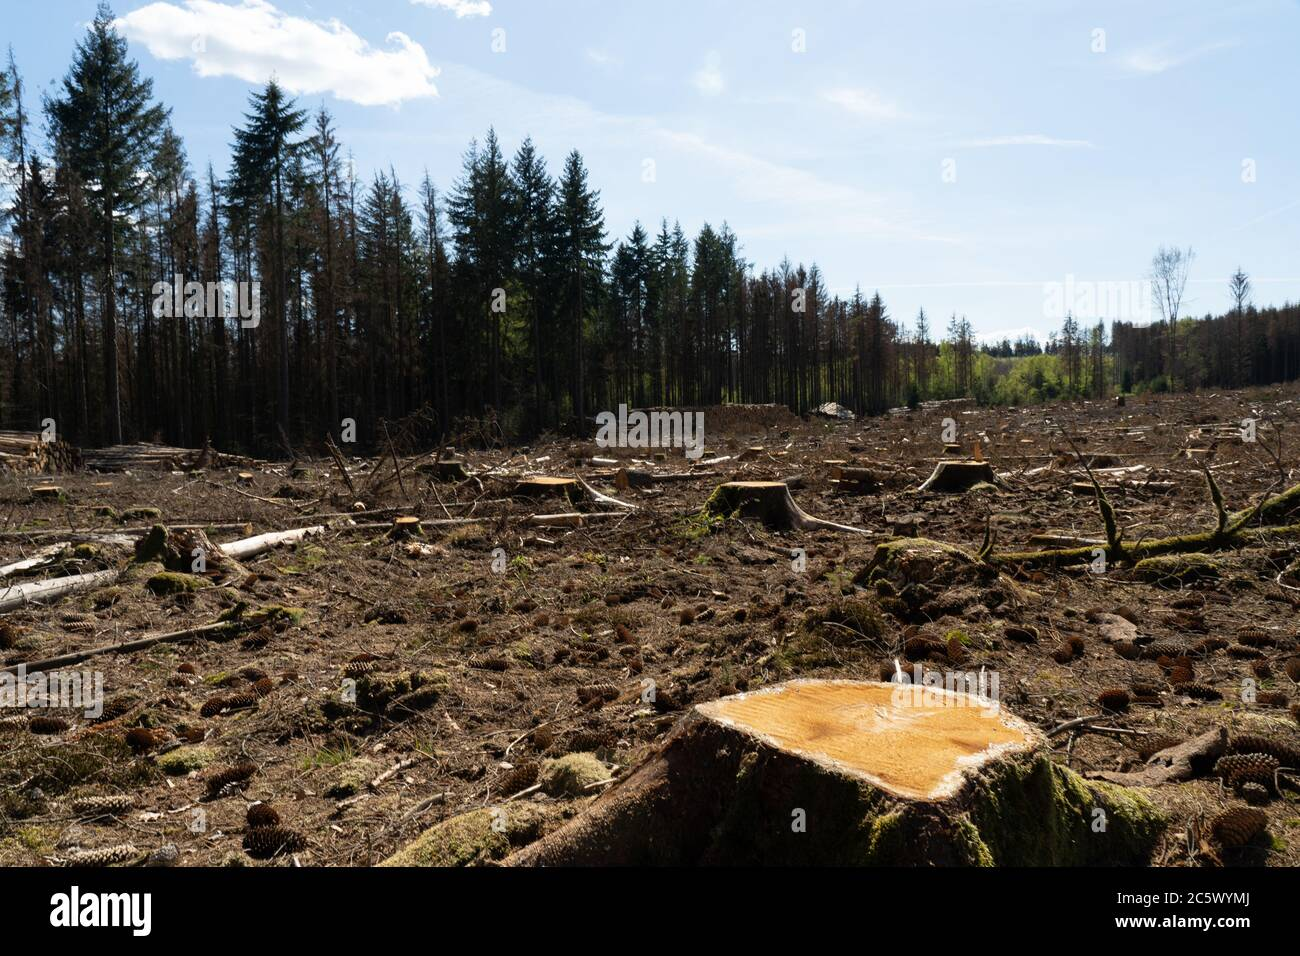 felled trees symbol for the forest dieback in germany due to periods of extreme heat and dryness Stock Photo